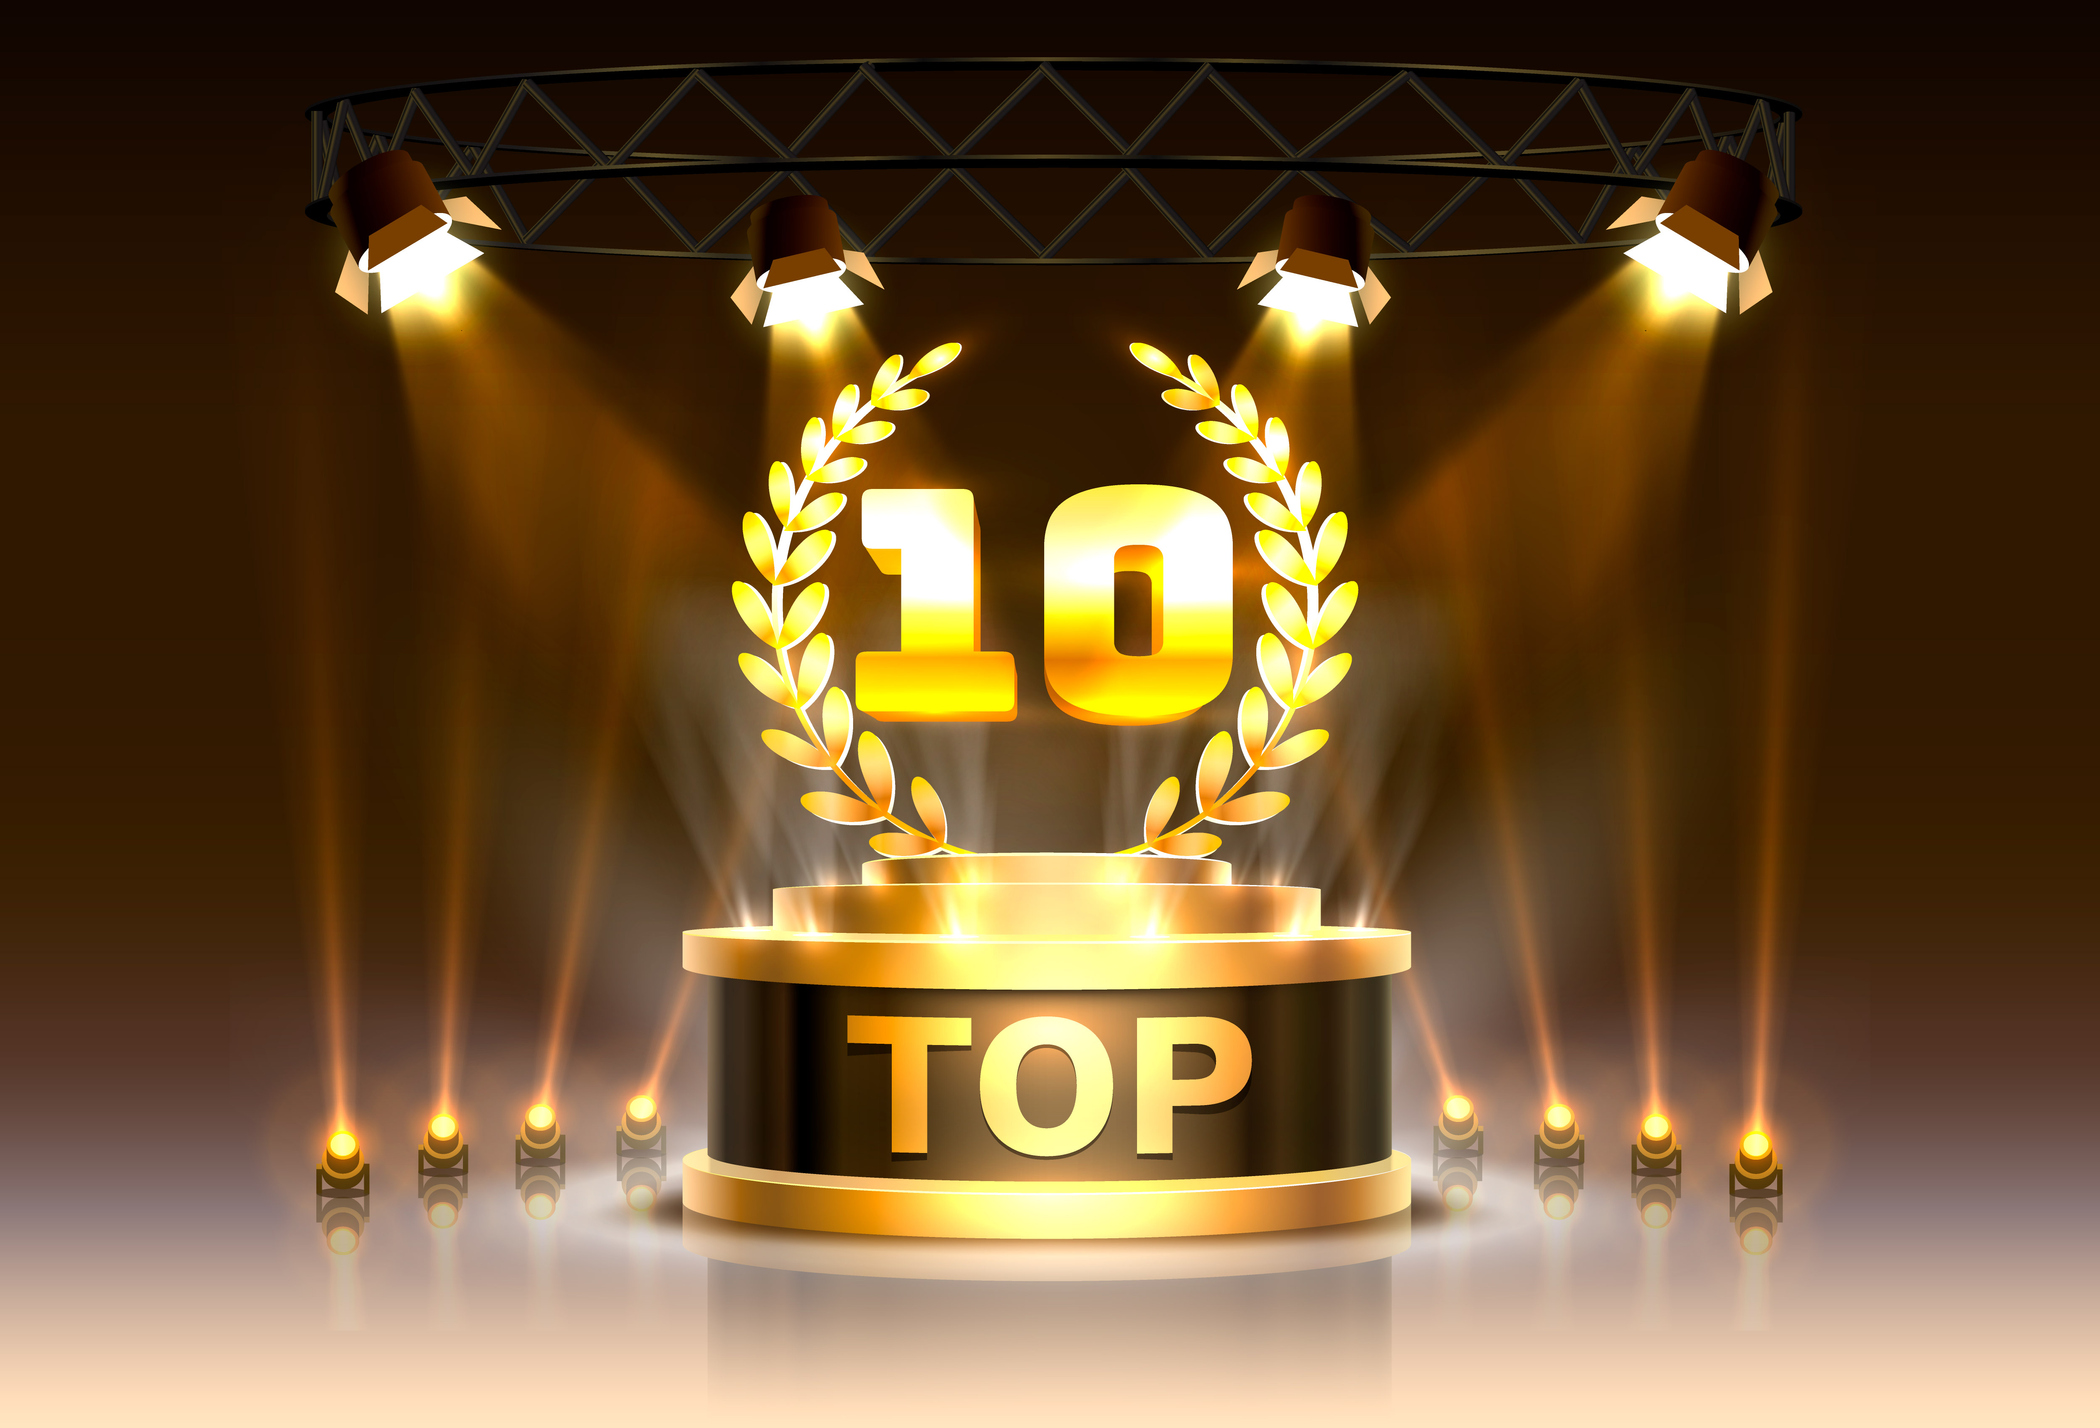 Top-10-Injection-Molding-Blog-Posts-of-the-Last-Decade